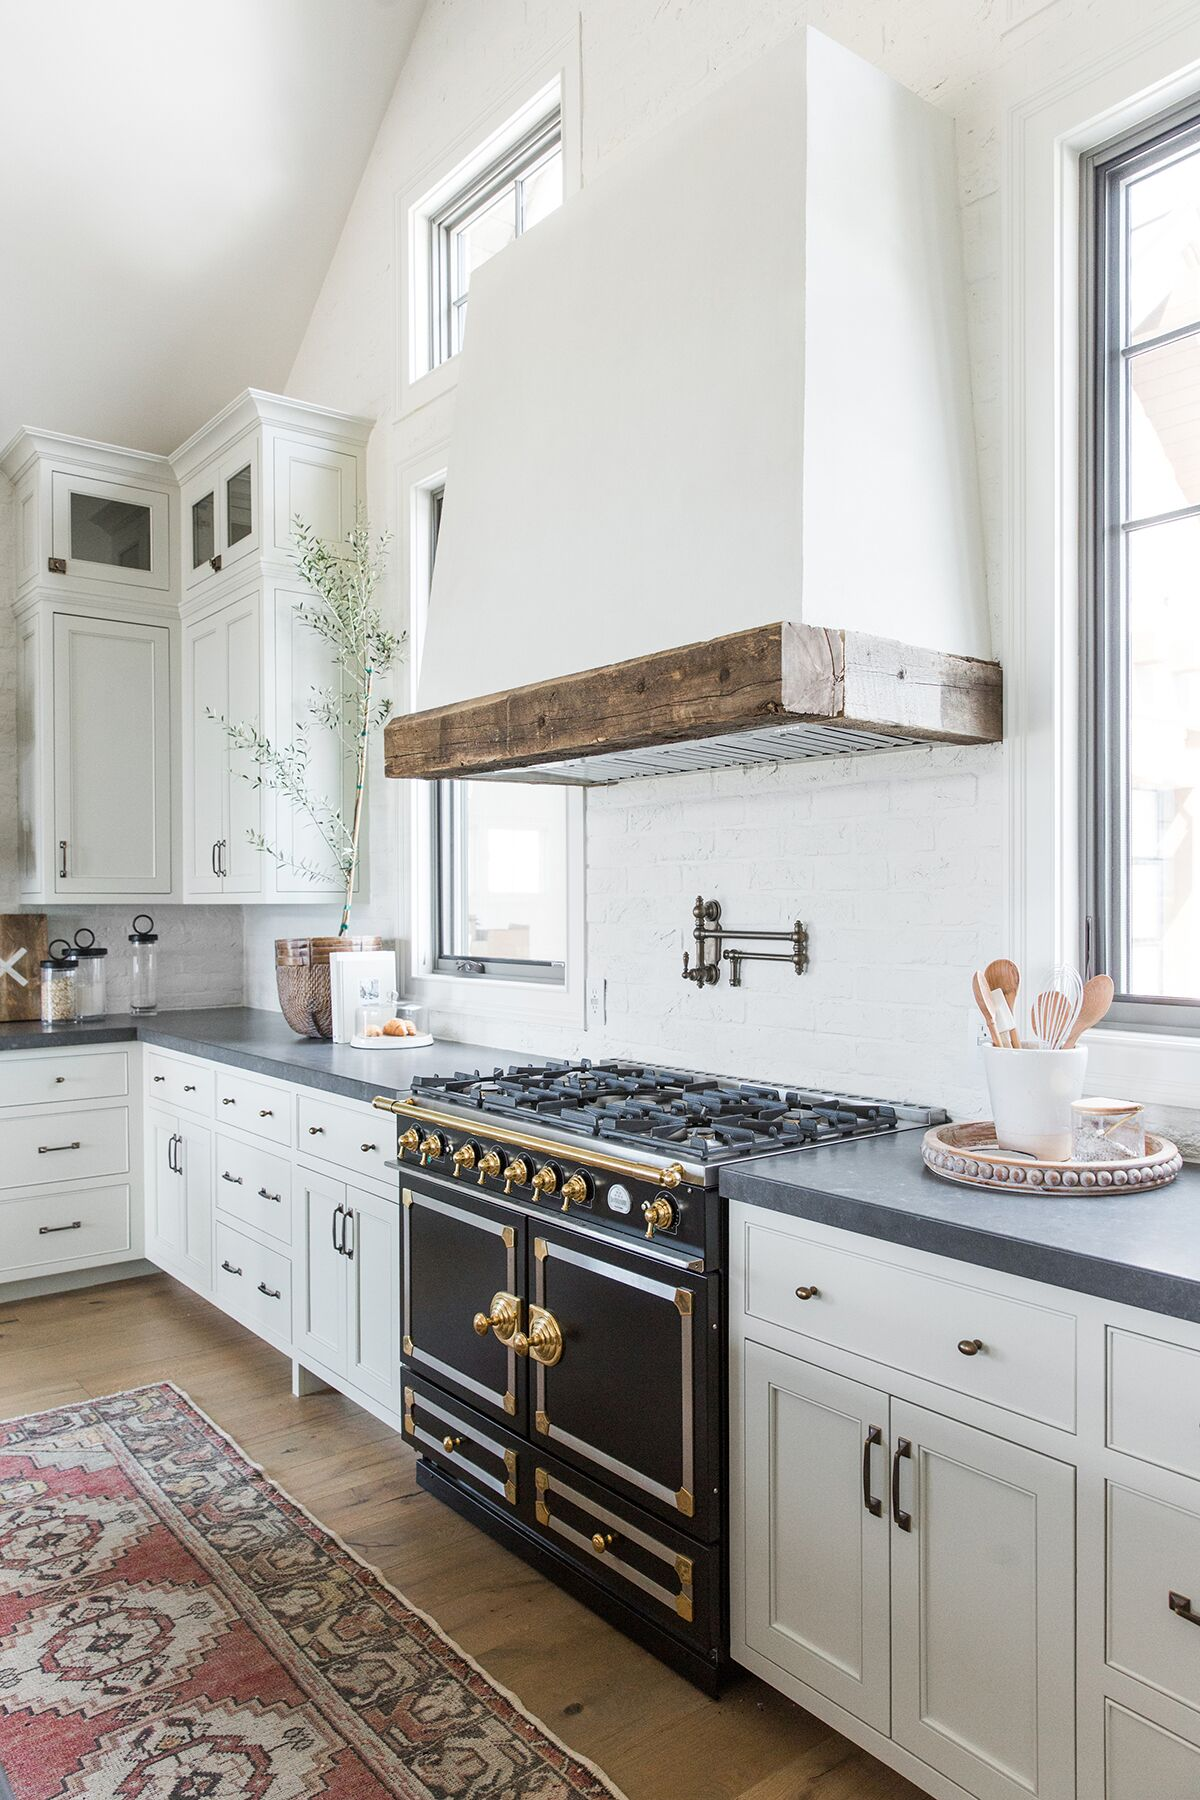 Refined,+rustic+kitchen+with+exposed+wooden+beams,+hanging+lanterns,+painted+white+brick,+oven+range+in+mountain+home+-+Studio+McGee+Design-2.jpg